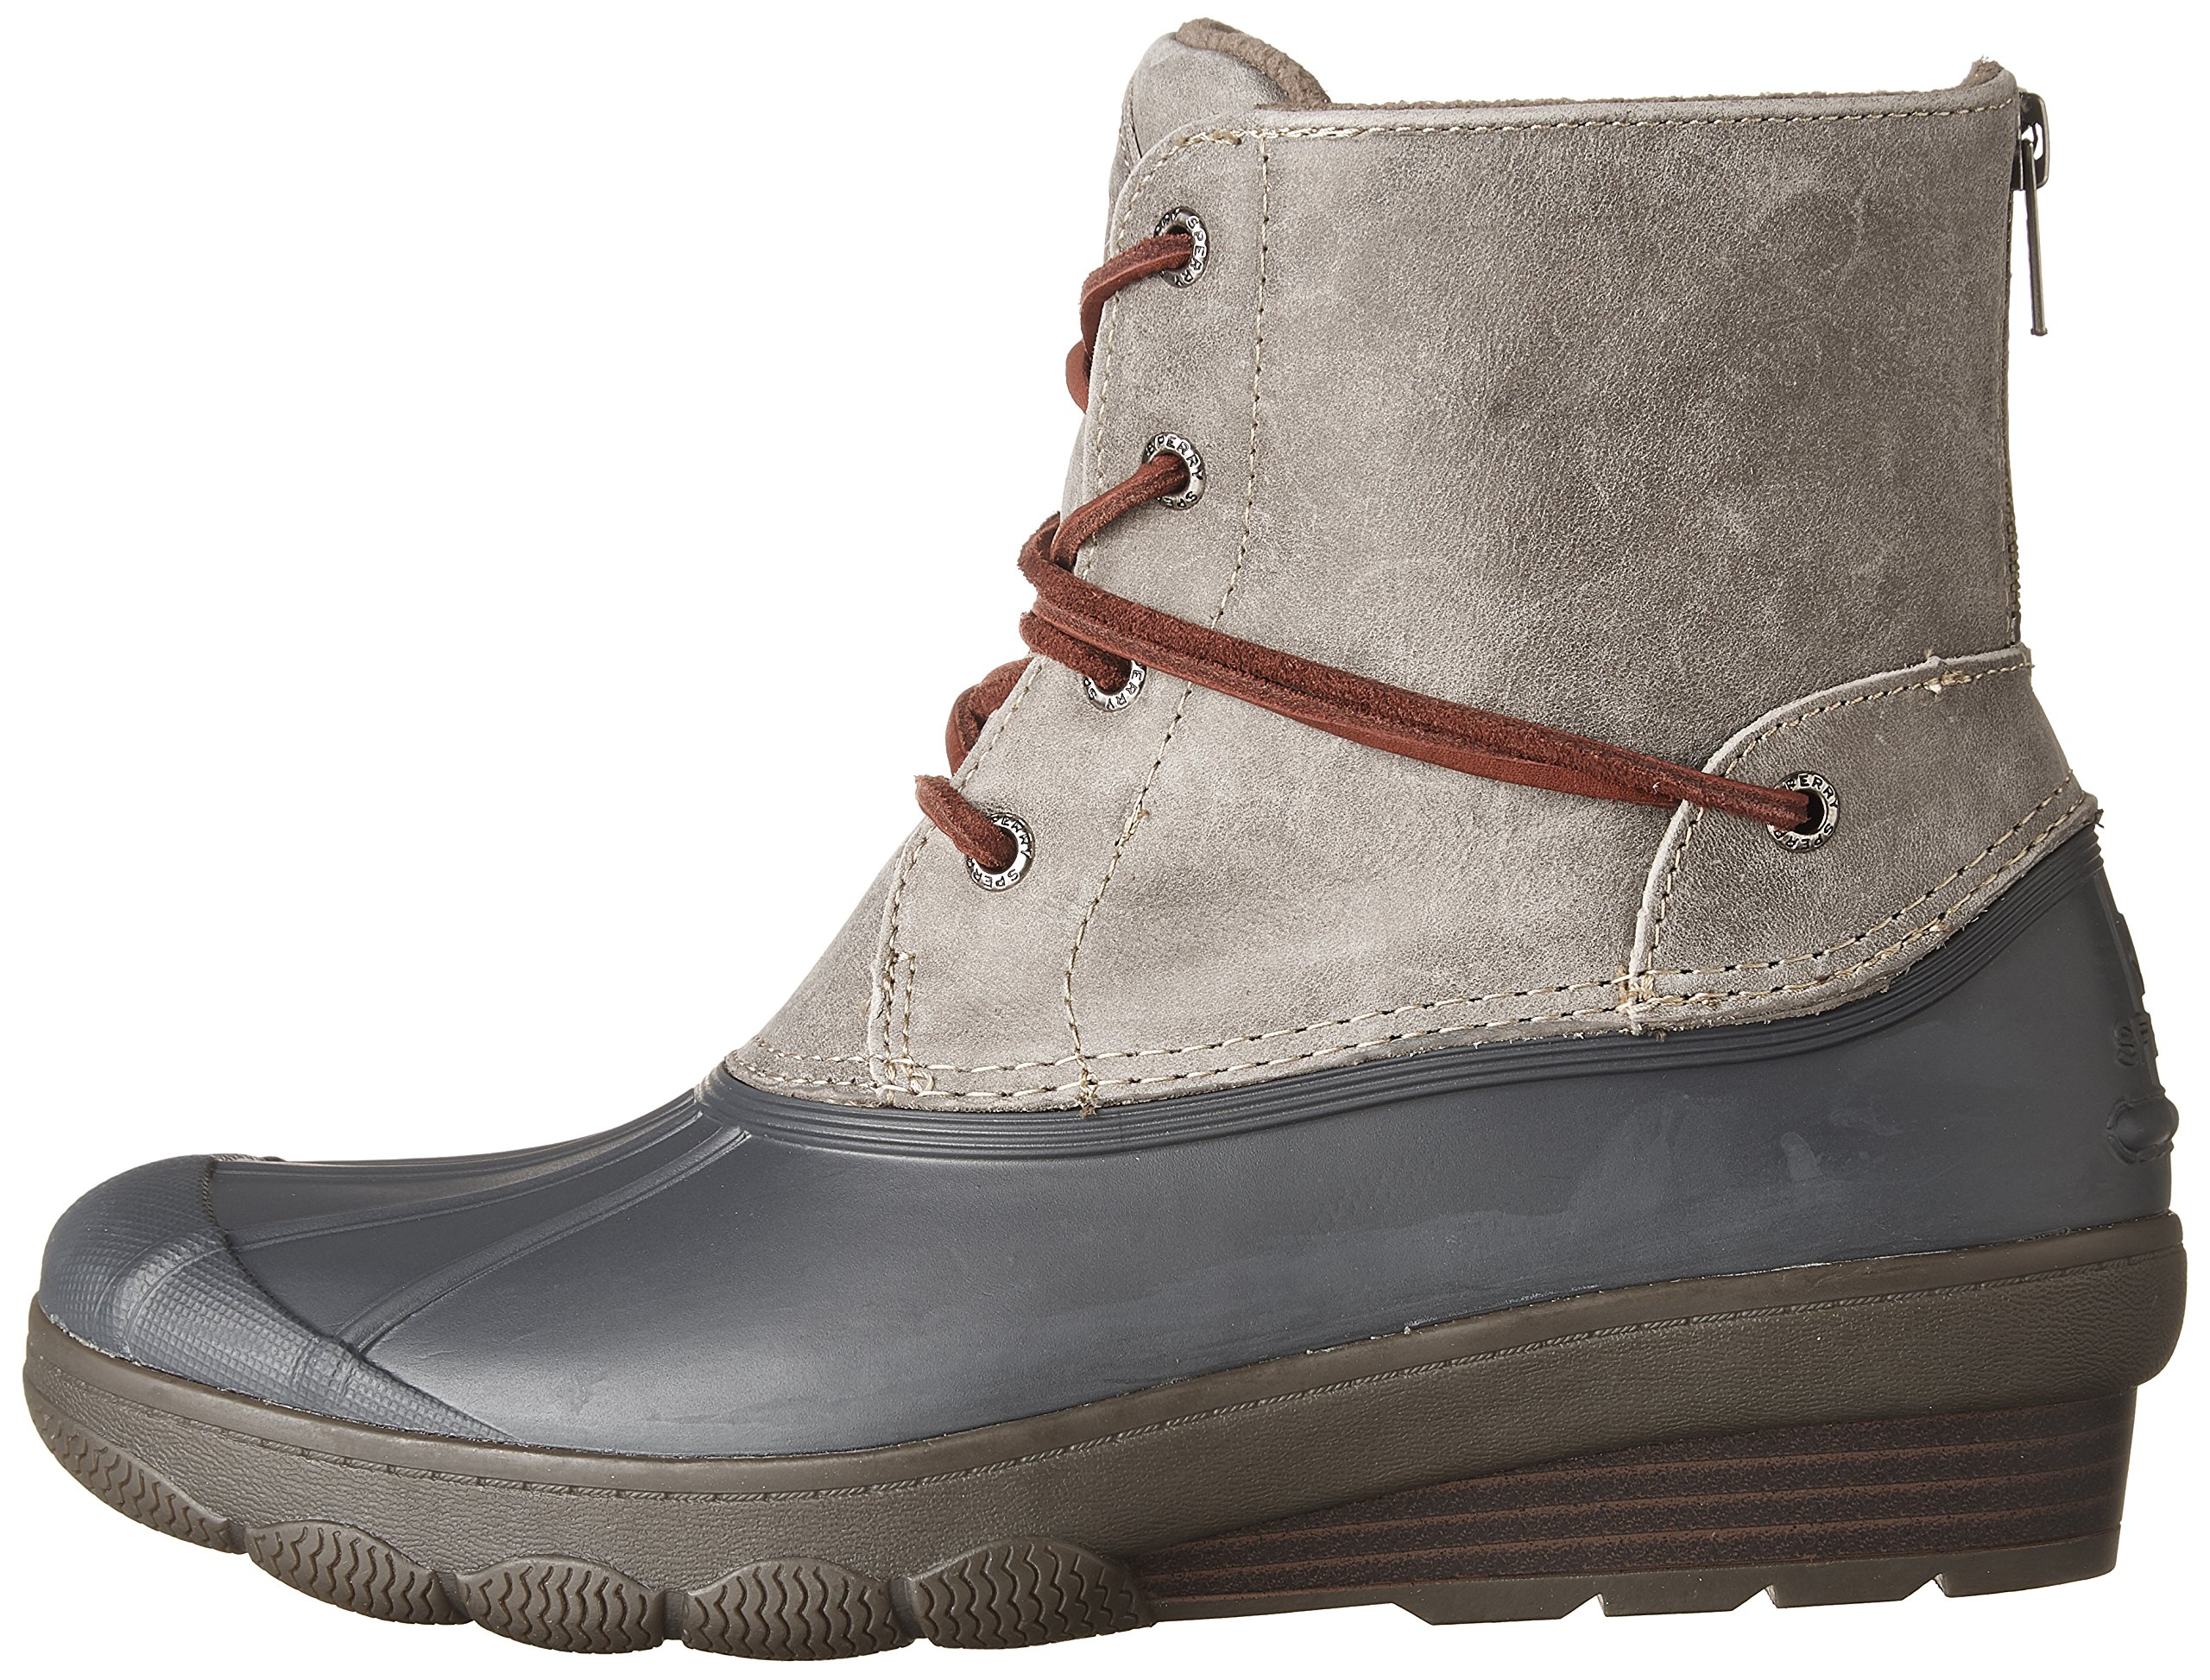 Sperry Top-Sider Women's Saltwater Wedge Tide Rain Boot, Grey, 8 Medium US by Sperry Top-Sider (Image #5)